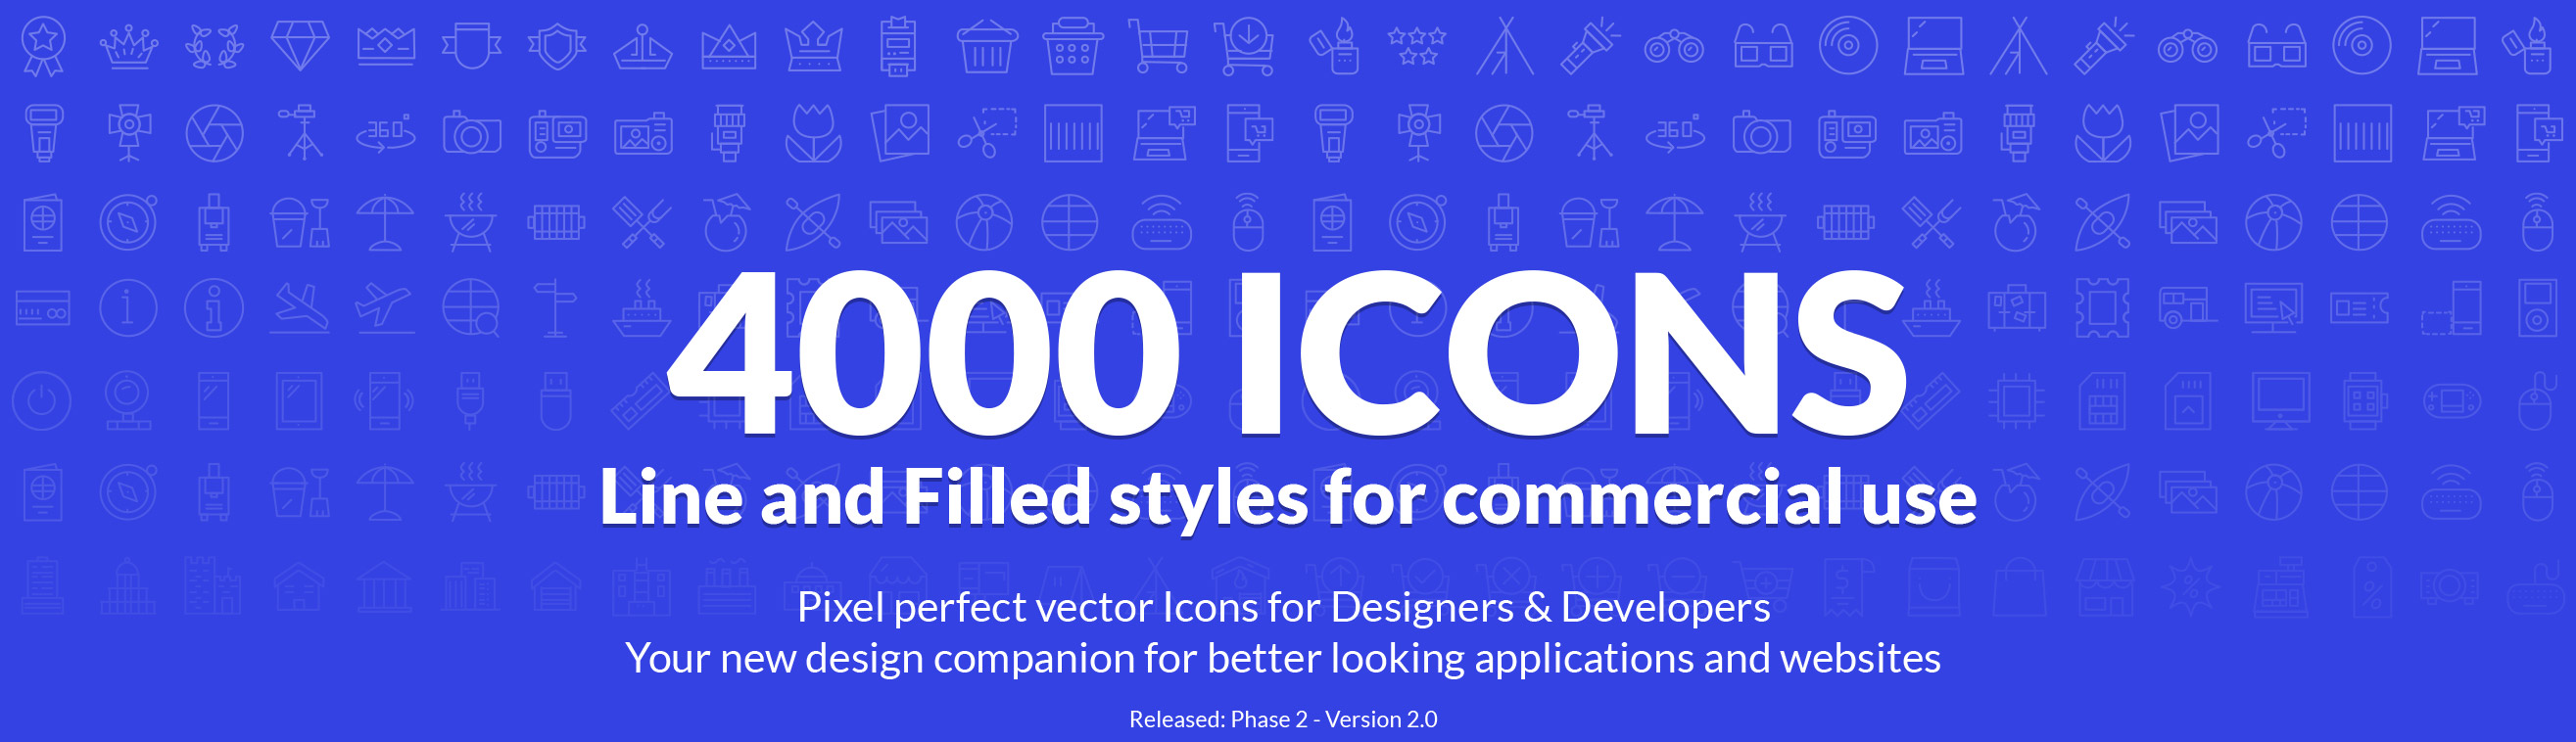 line and glyph icons